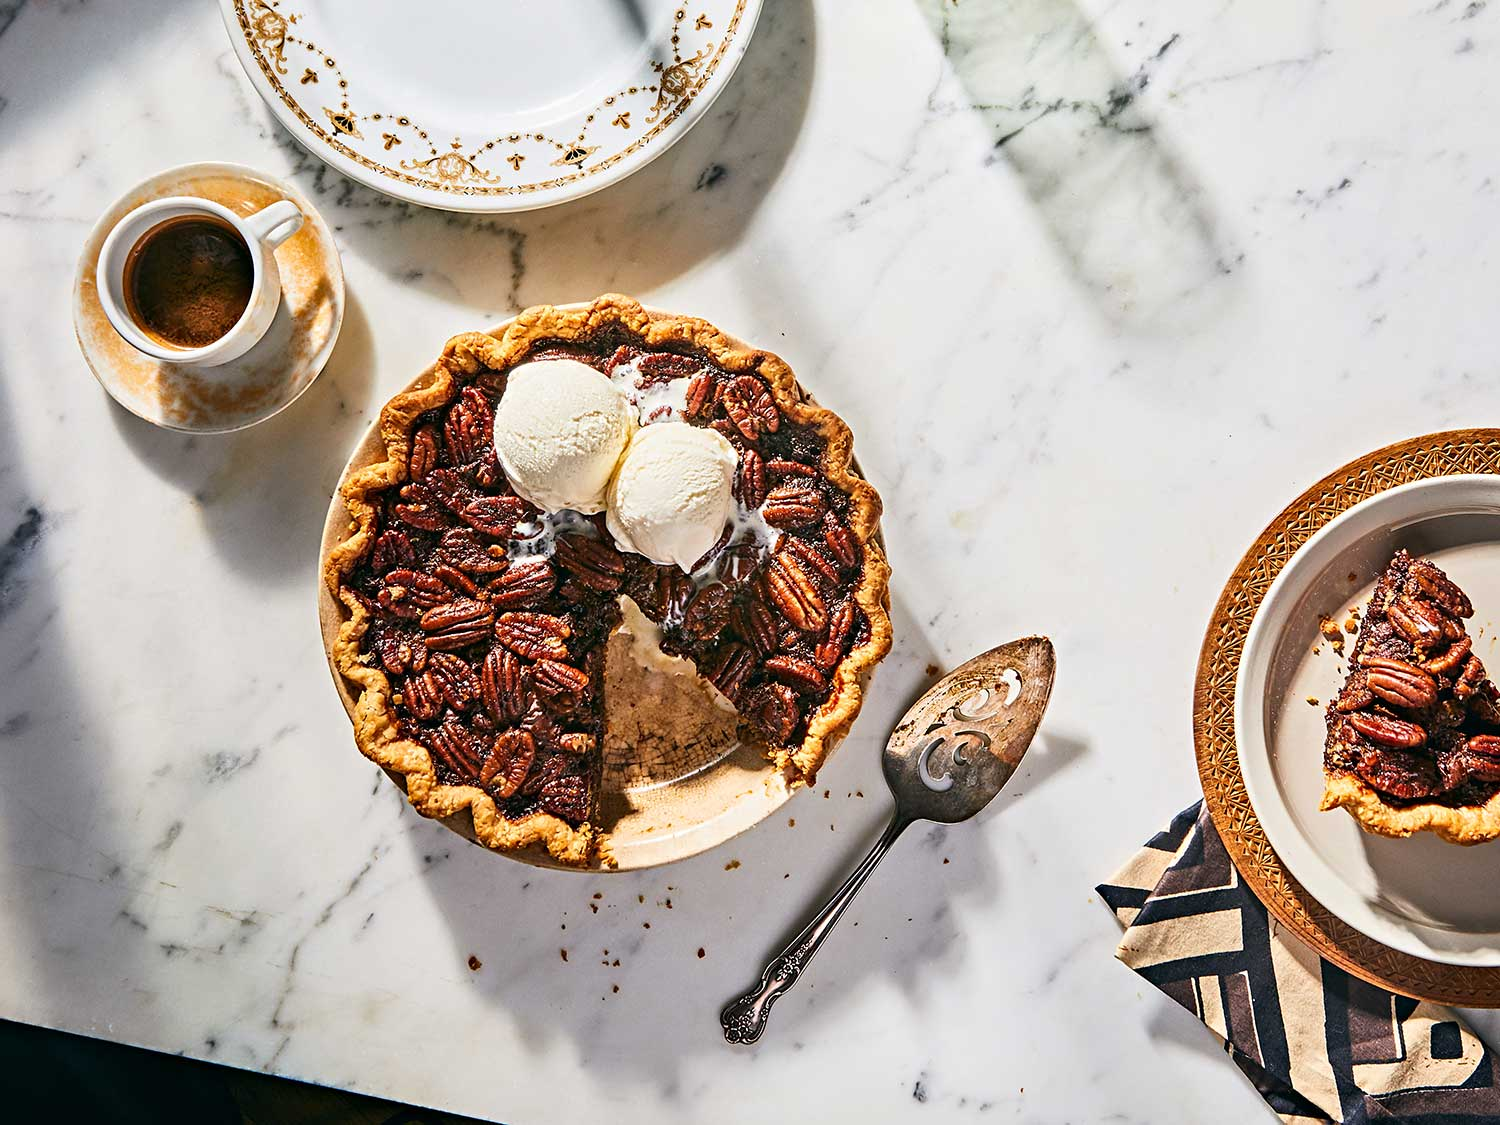 This pecan pie combines chocolate and bourbon in the most decadent way